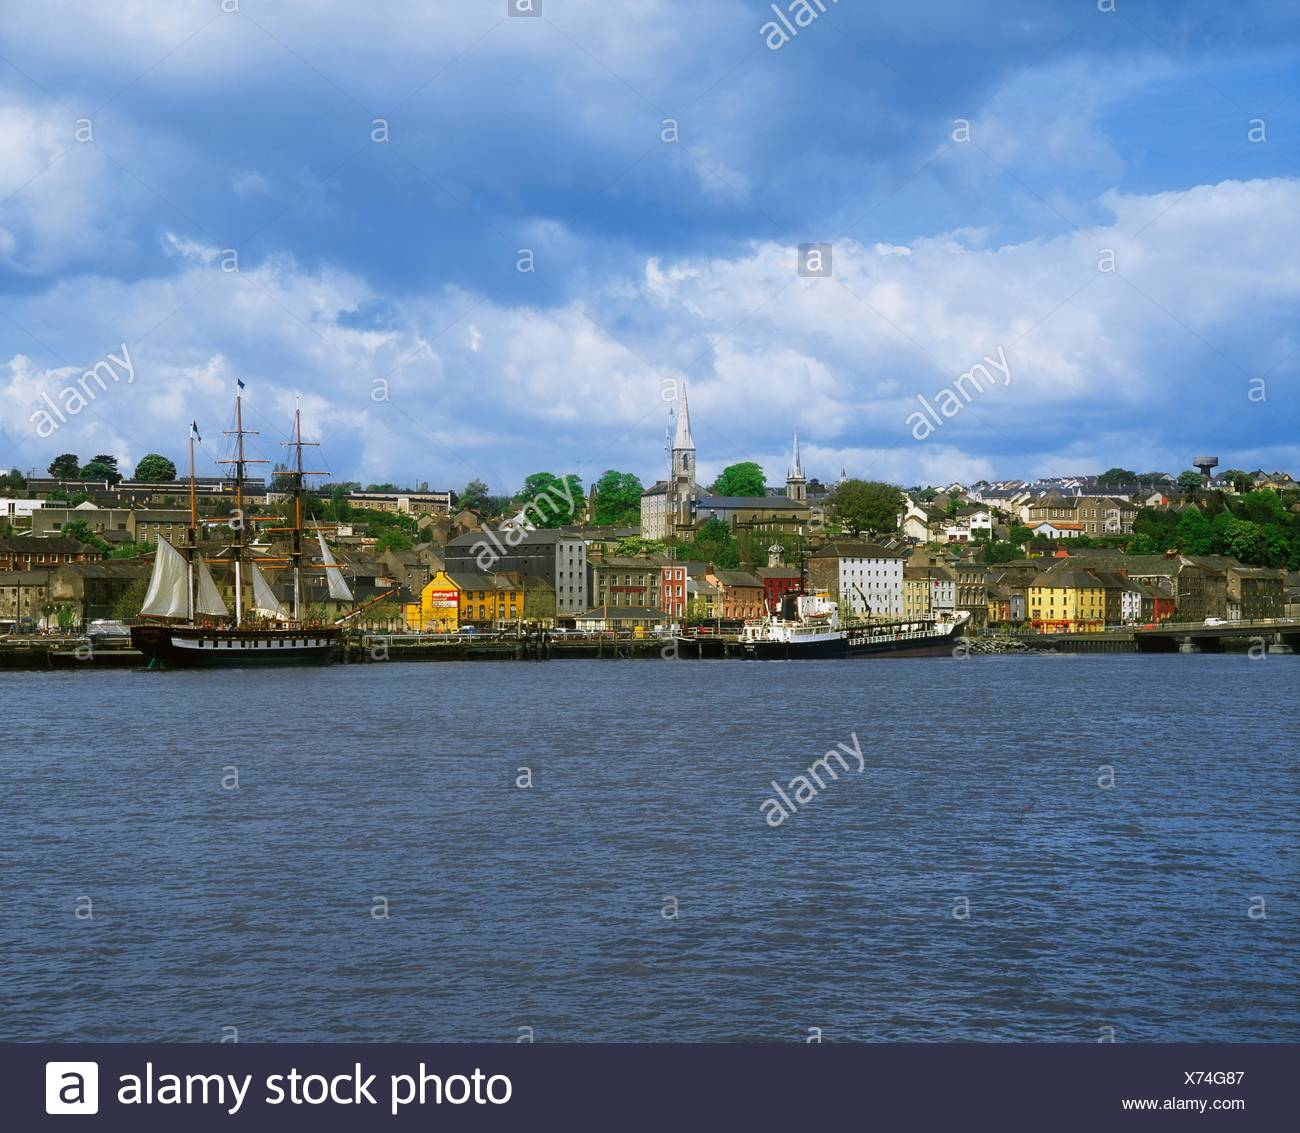 Dunbrody Emigrant Ship, New Ross, Co Wexford, Ireland - Stock Image